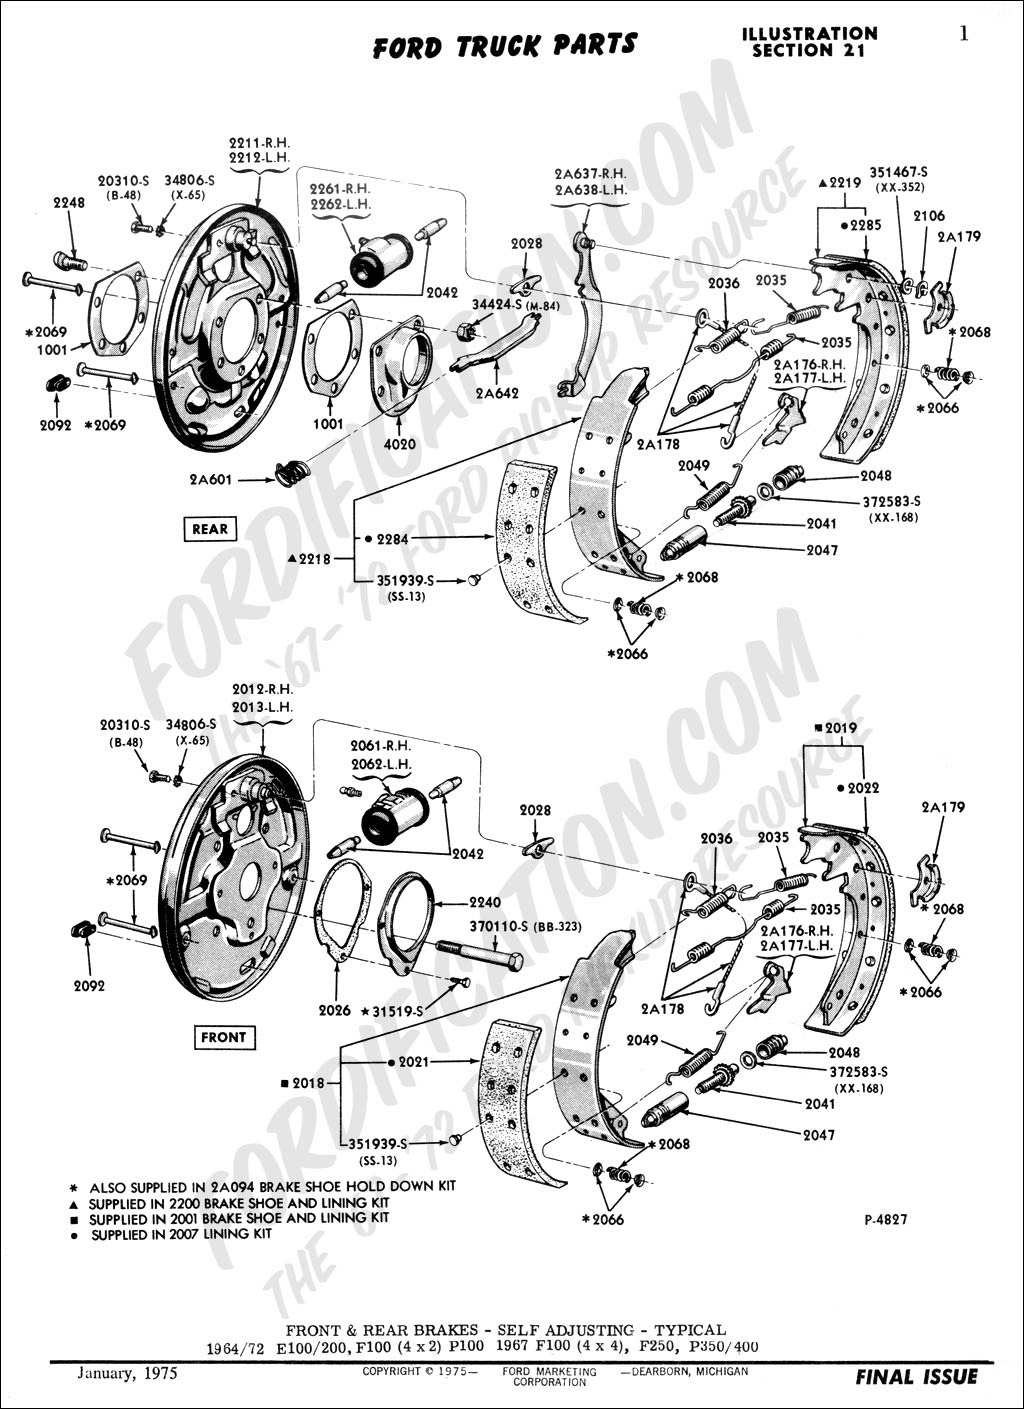 2000 Ford Ranger Brake Line Diagram : ranger, brake, diagram, Truck, Technical, Drawings, Schematics, Section, Brake, Systems, Related, Components